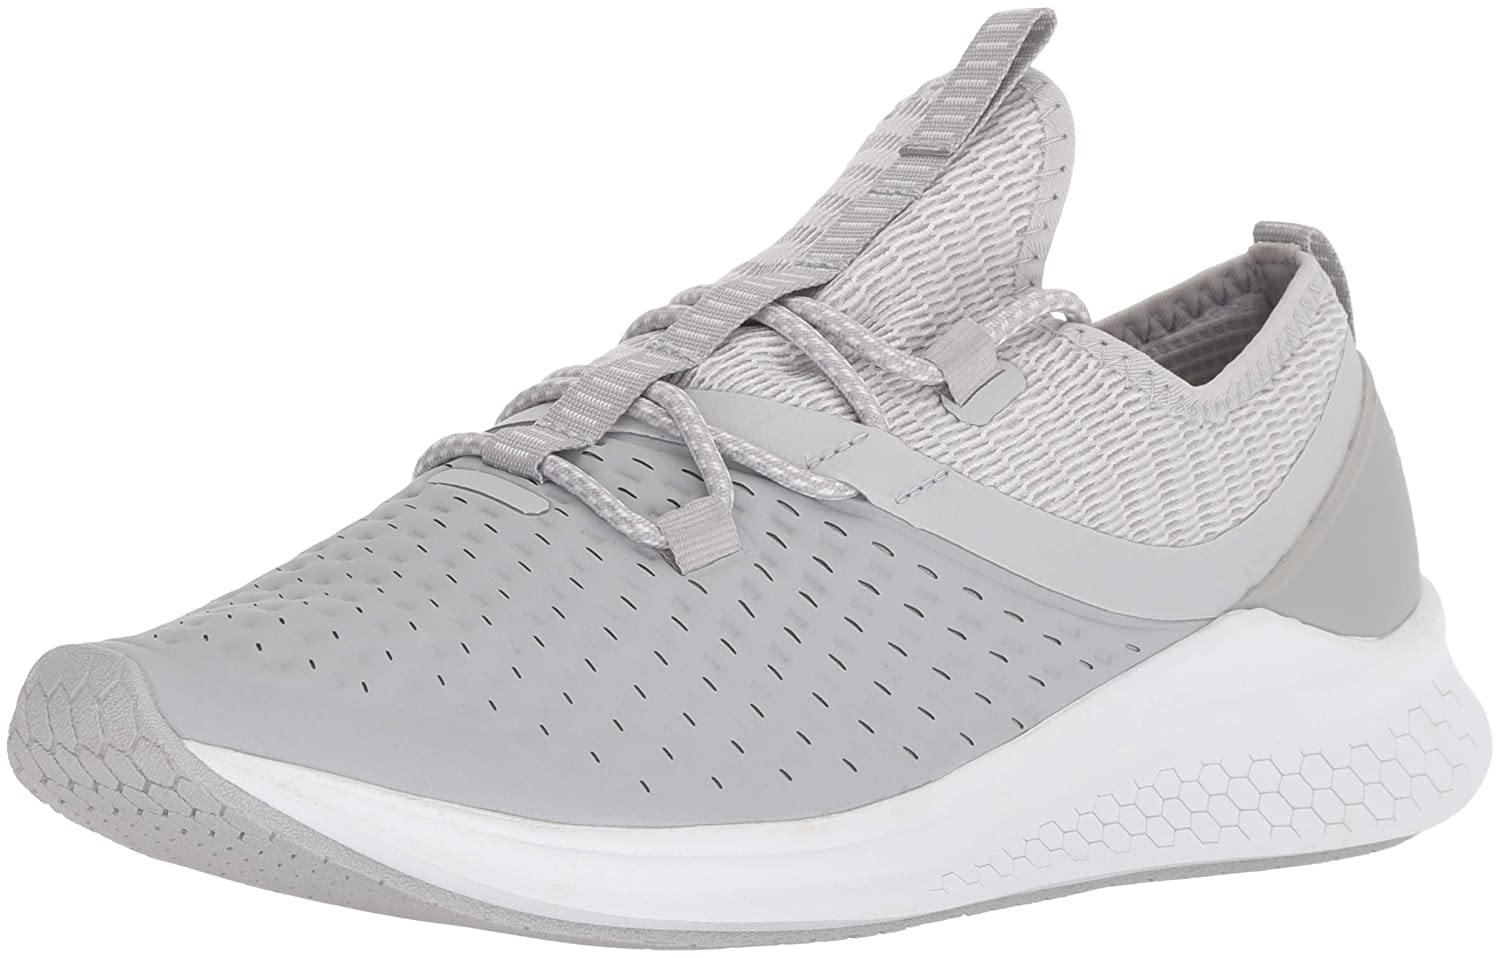 New Balance Women's Lazr V1 Fresh Foam Running Shoe B075R7D1H8 8.5 M US|Light Grey